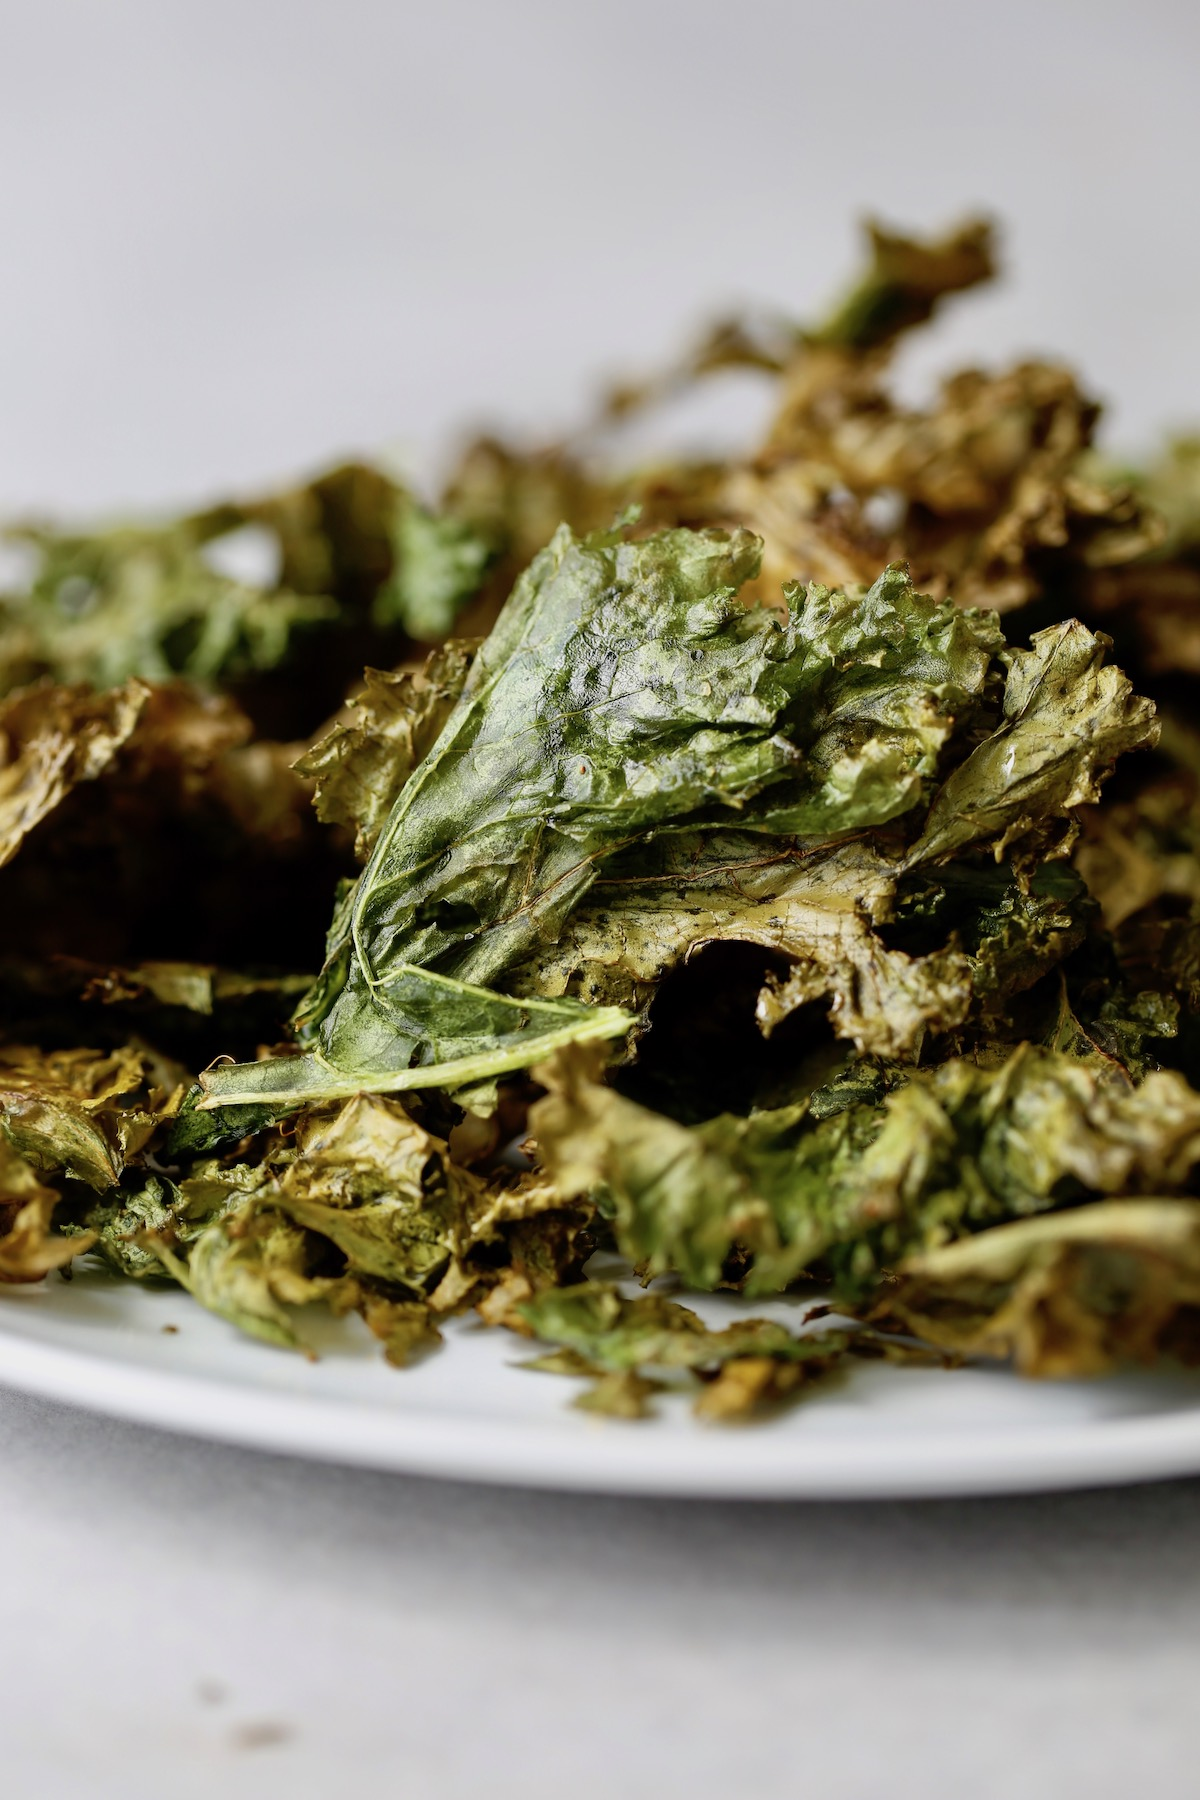 a plate piled high with homemade kale chips